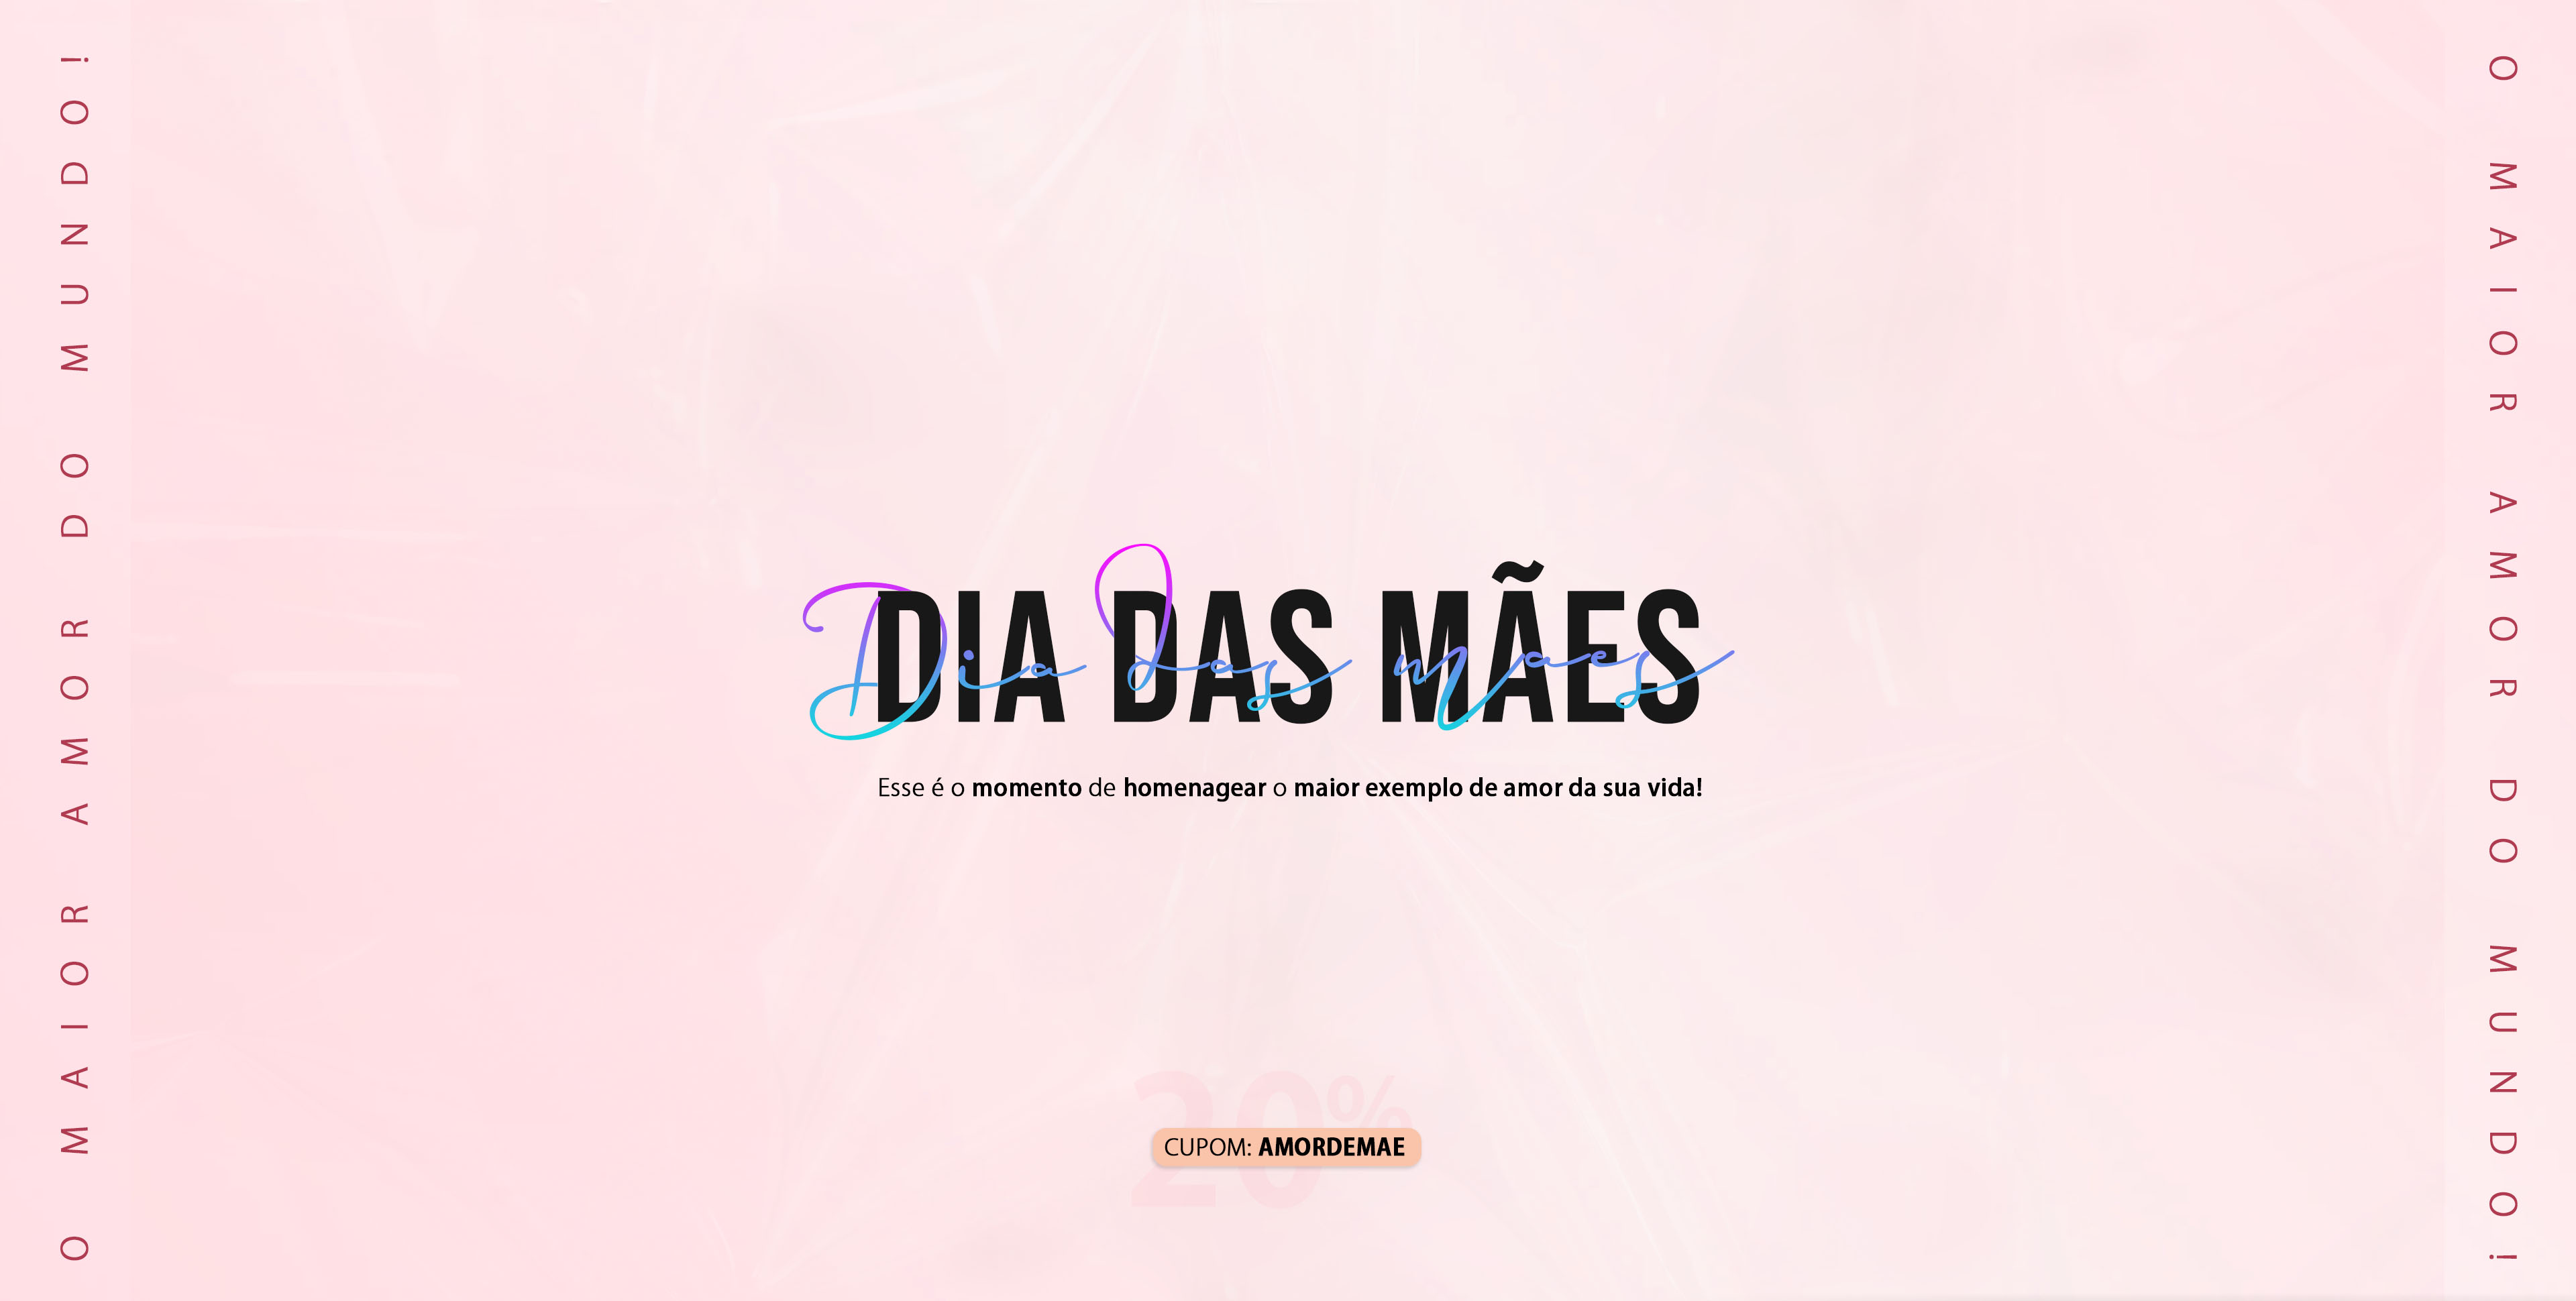 Diadasmaes